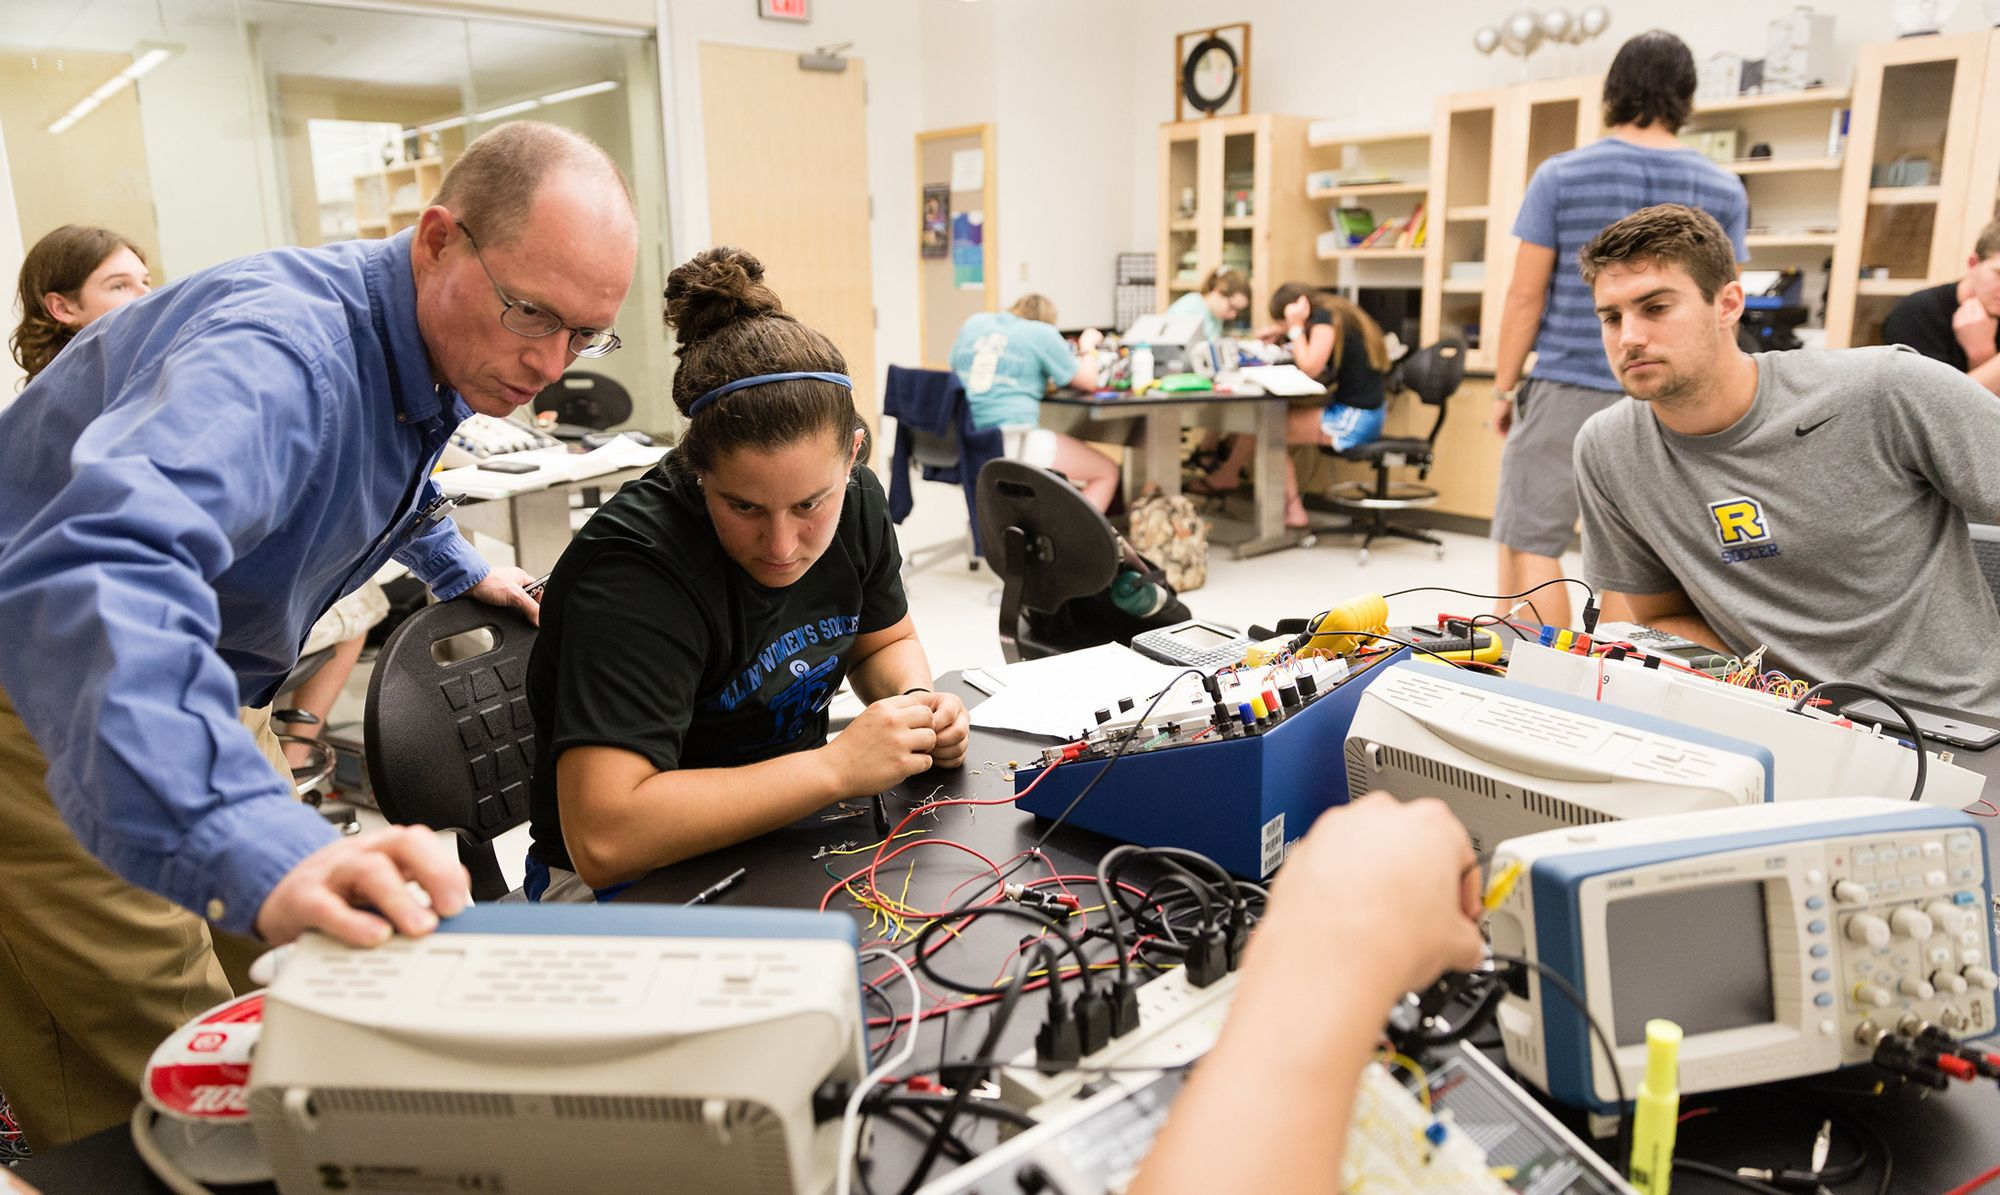 A physics professor is looking at a electrical reading with a couple of students in an electronics lab.